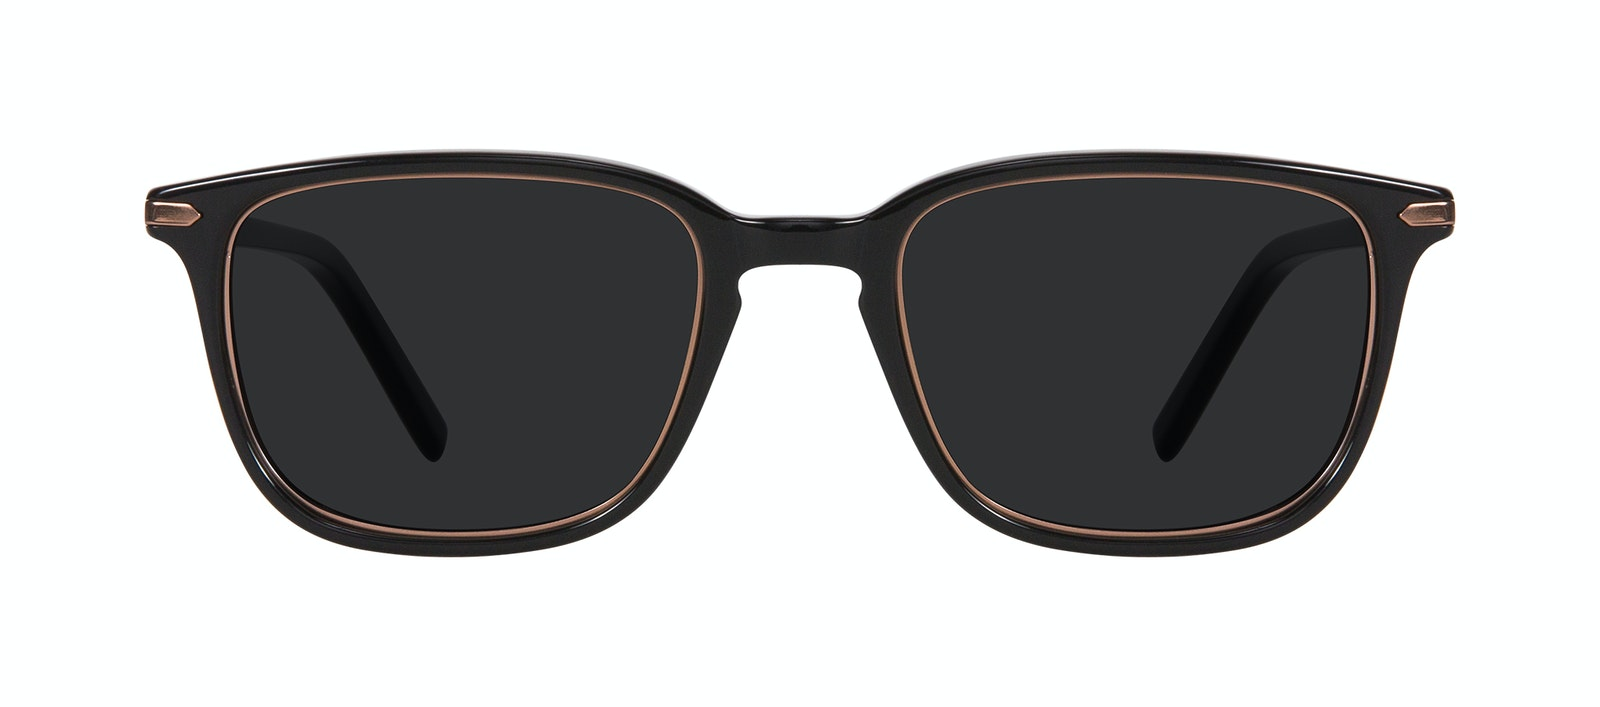 Affordable Fashion Glasses Square Sunglasses Men Sharp Lux Black Copper Front